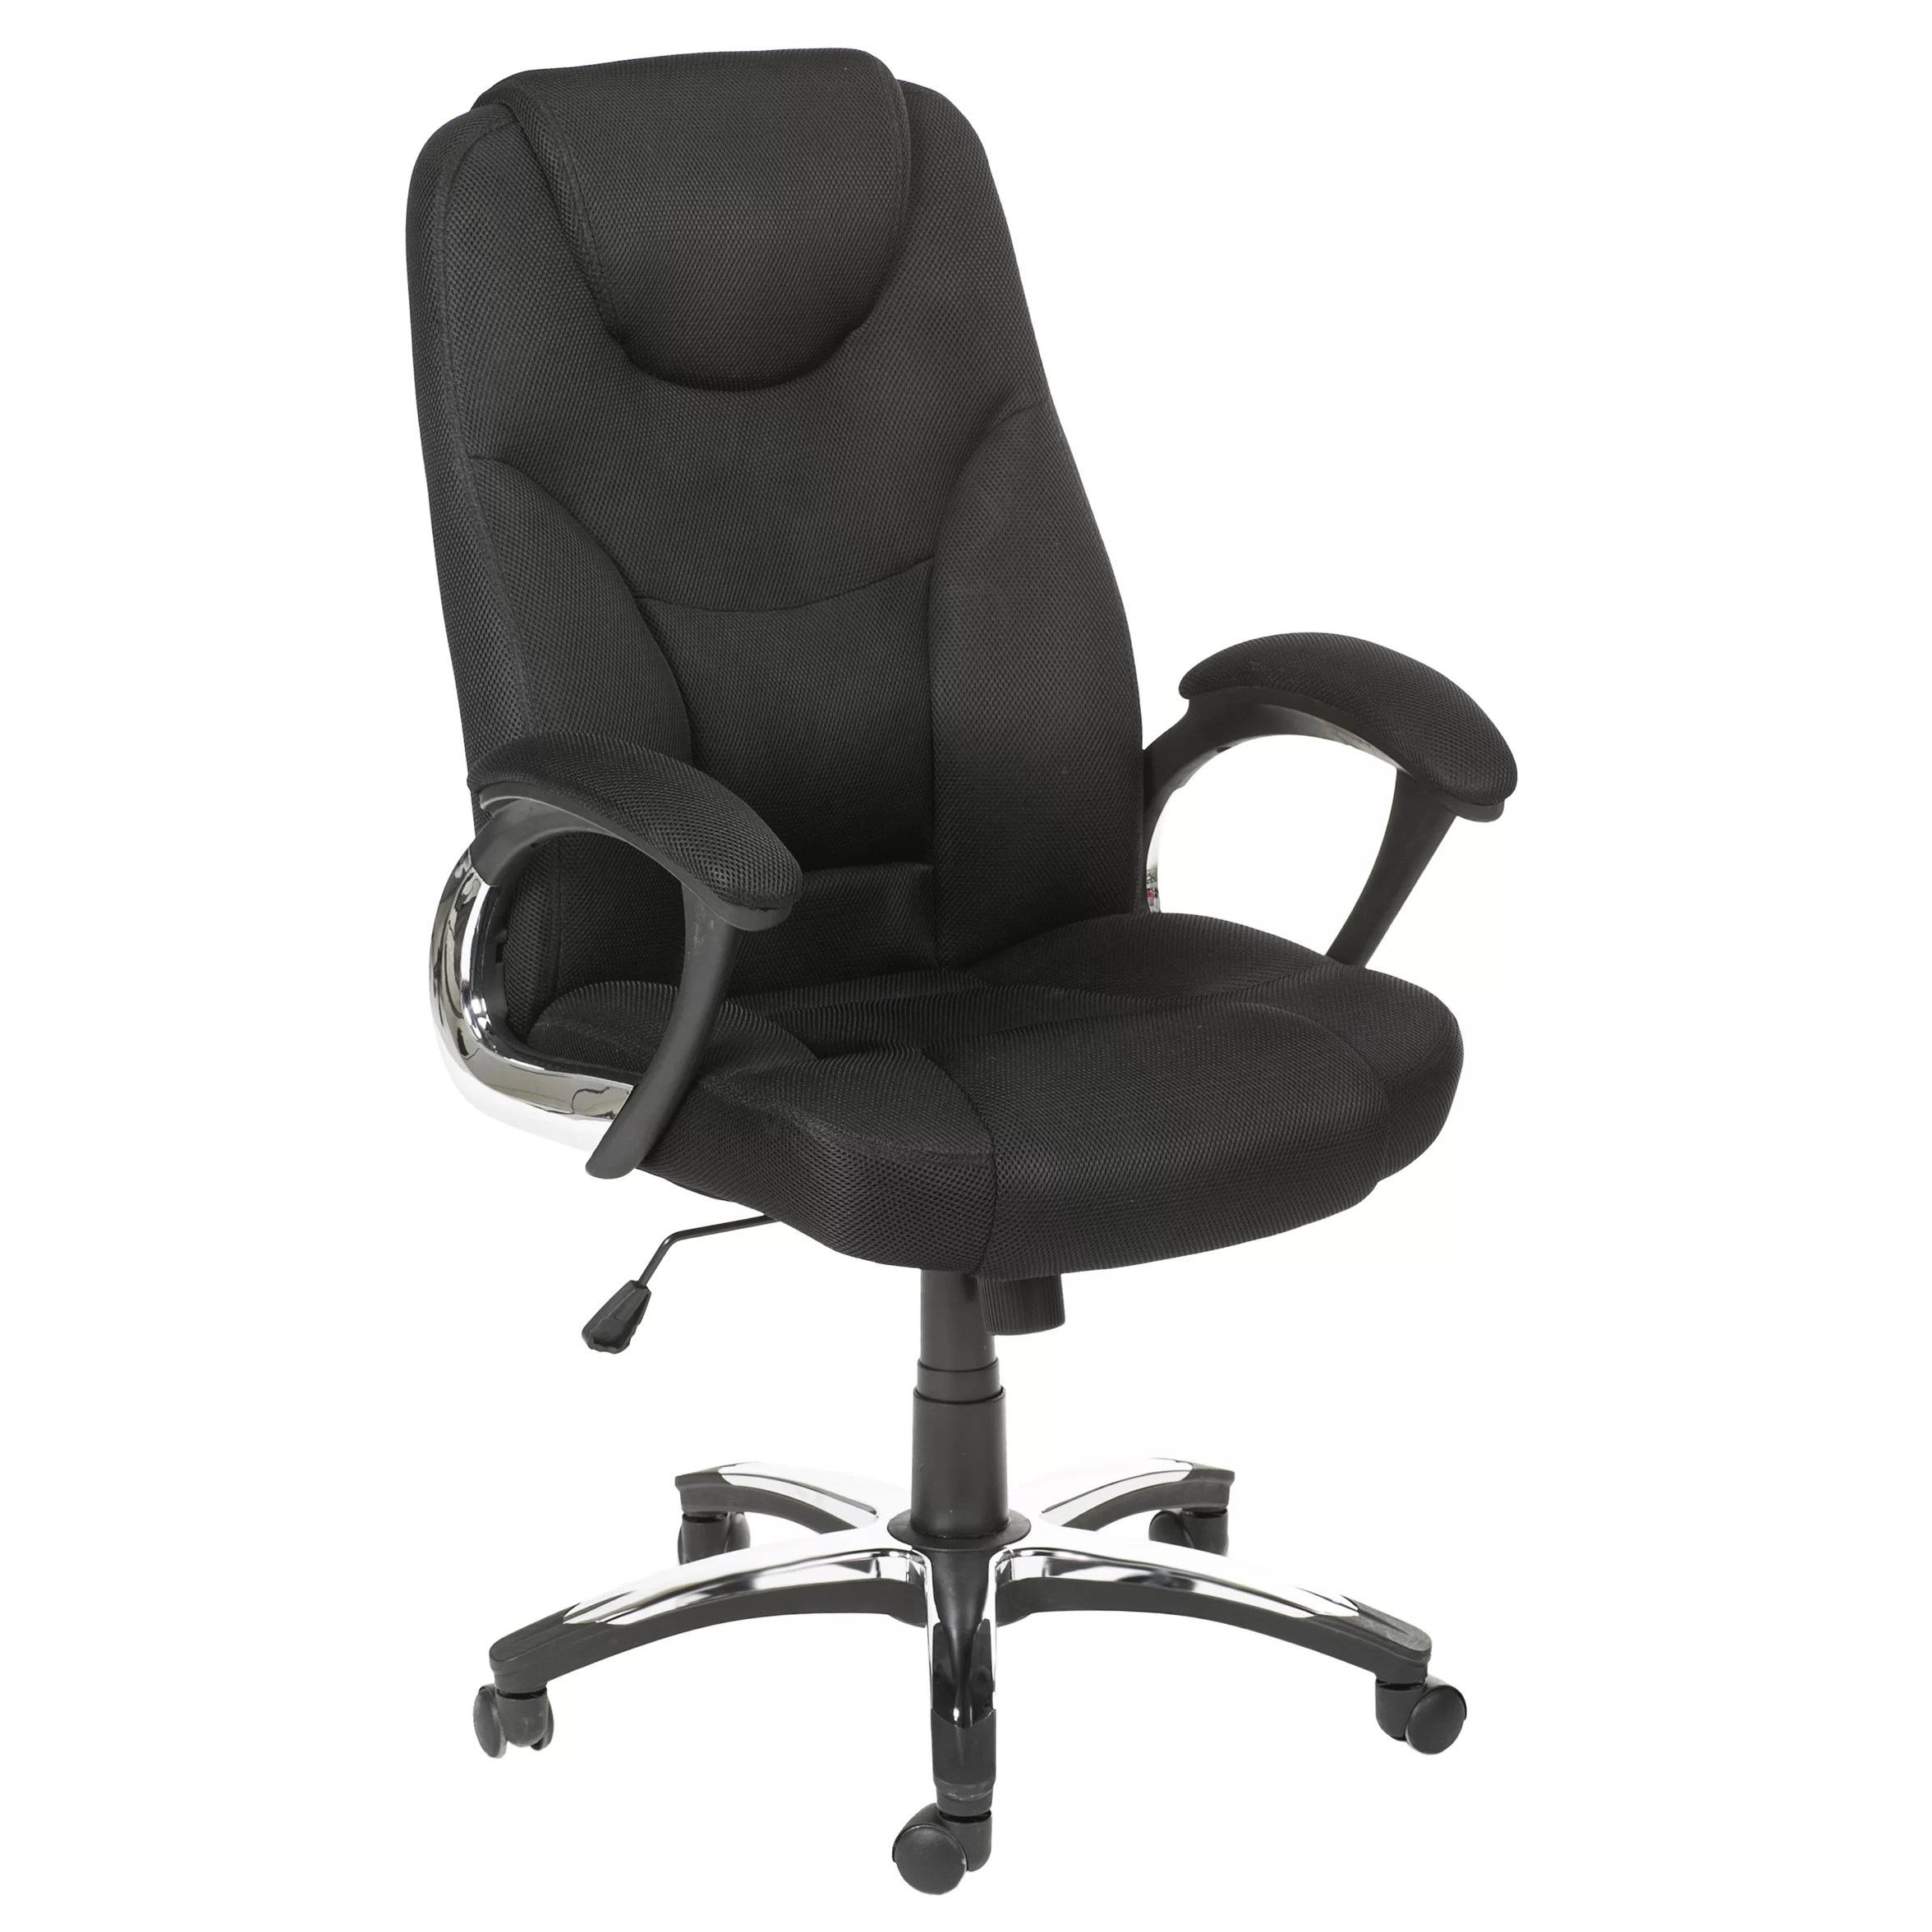 High Back Office Chairs Merax High Back Mesh Adjustable Office Chair And Reviews